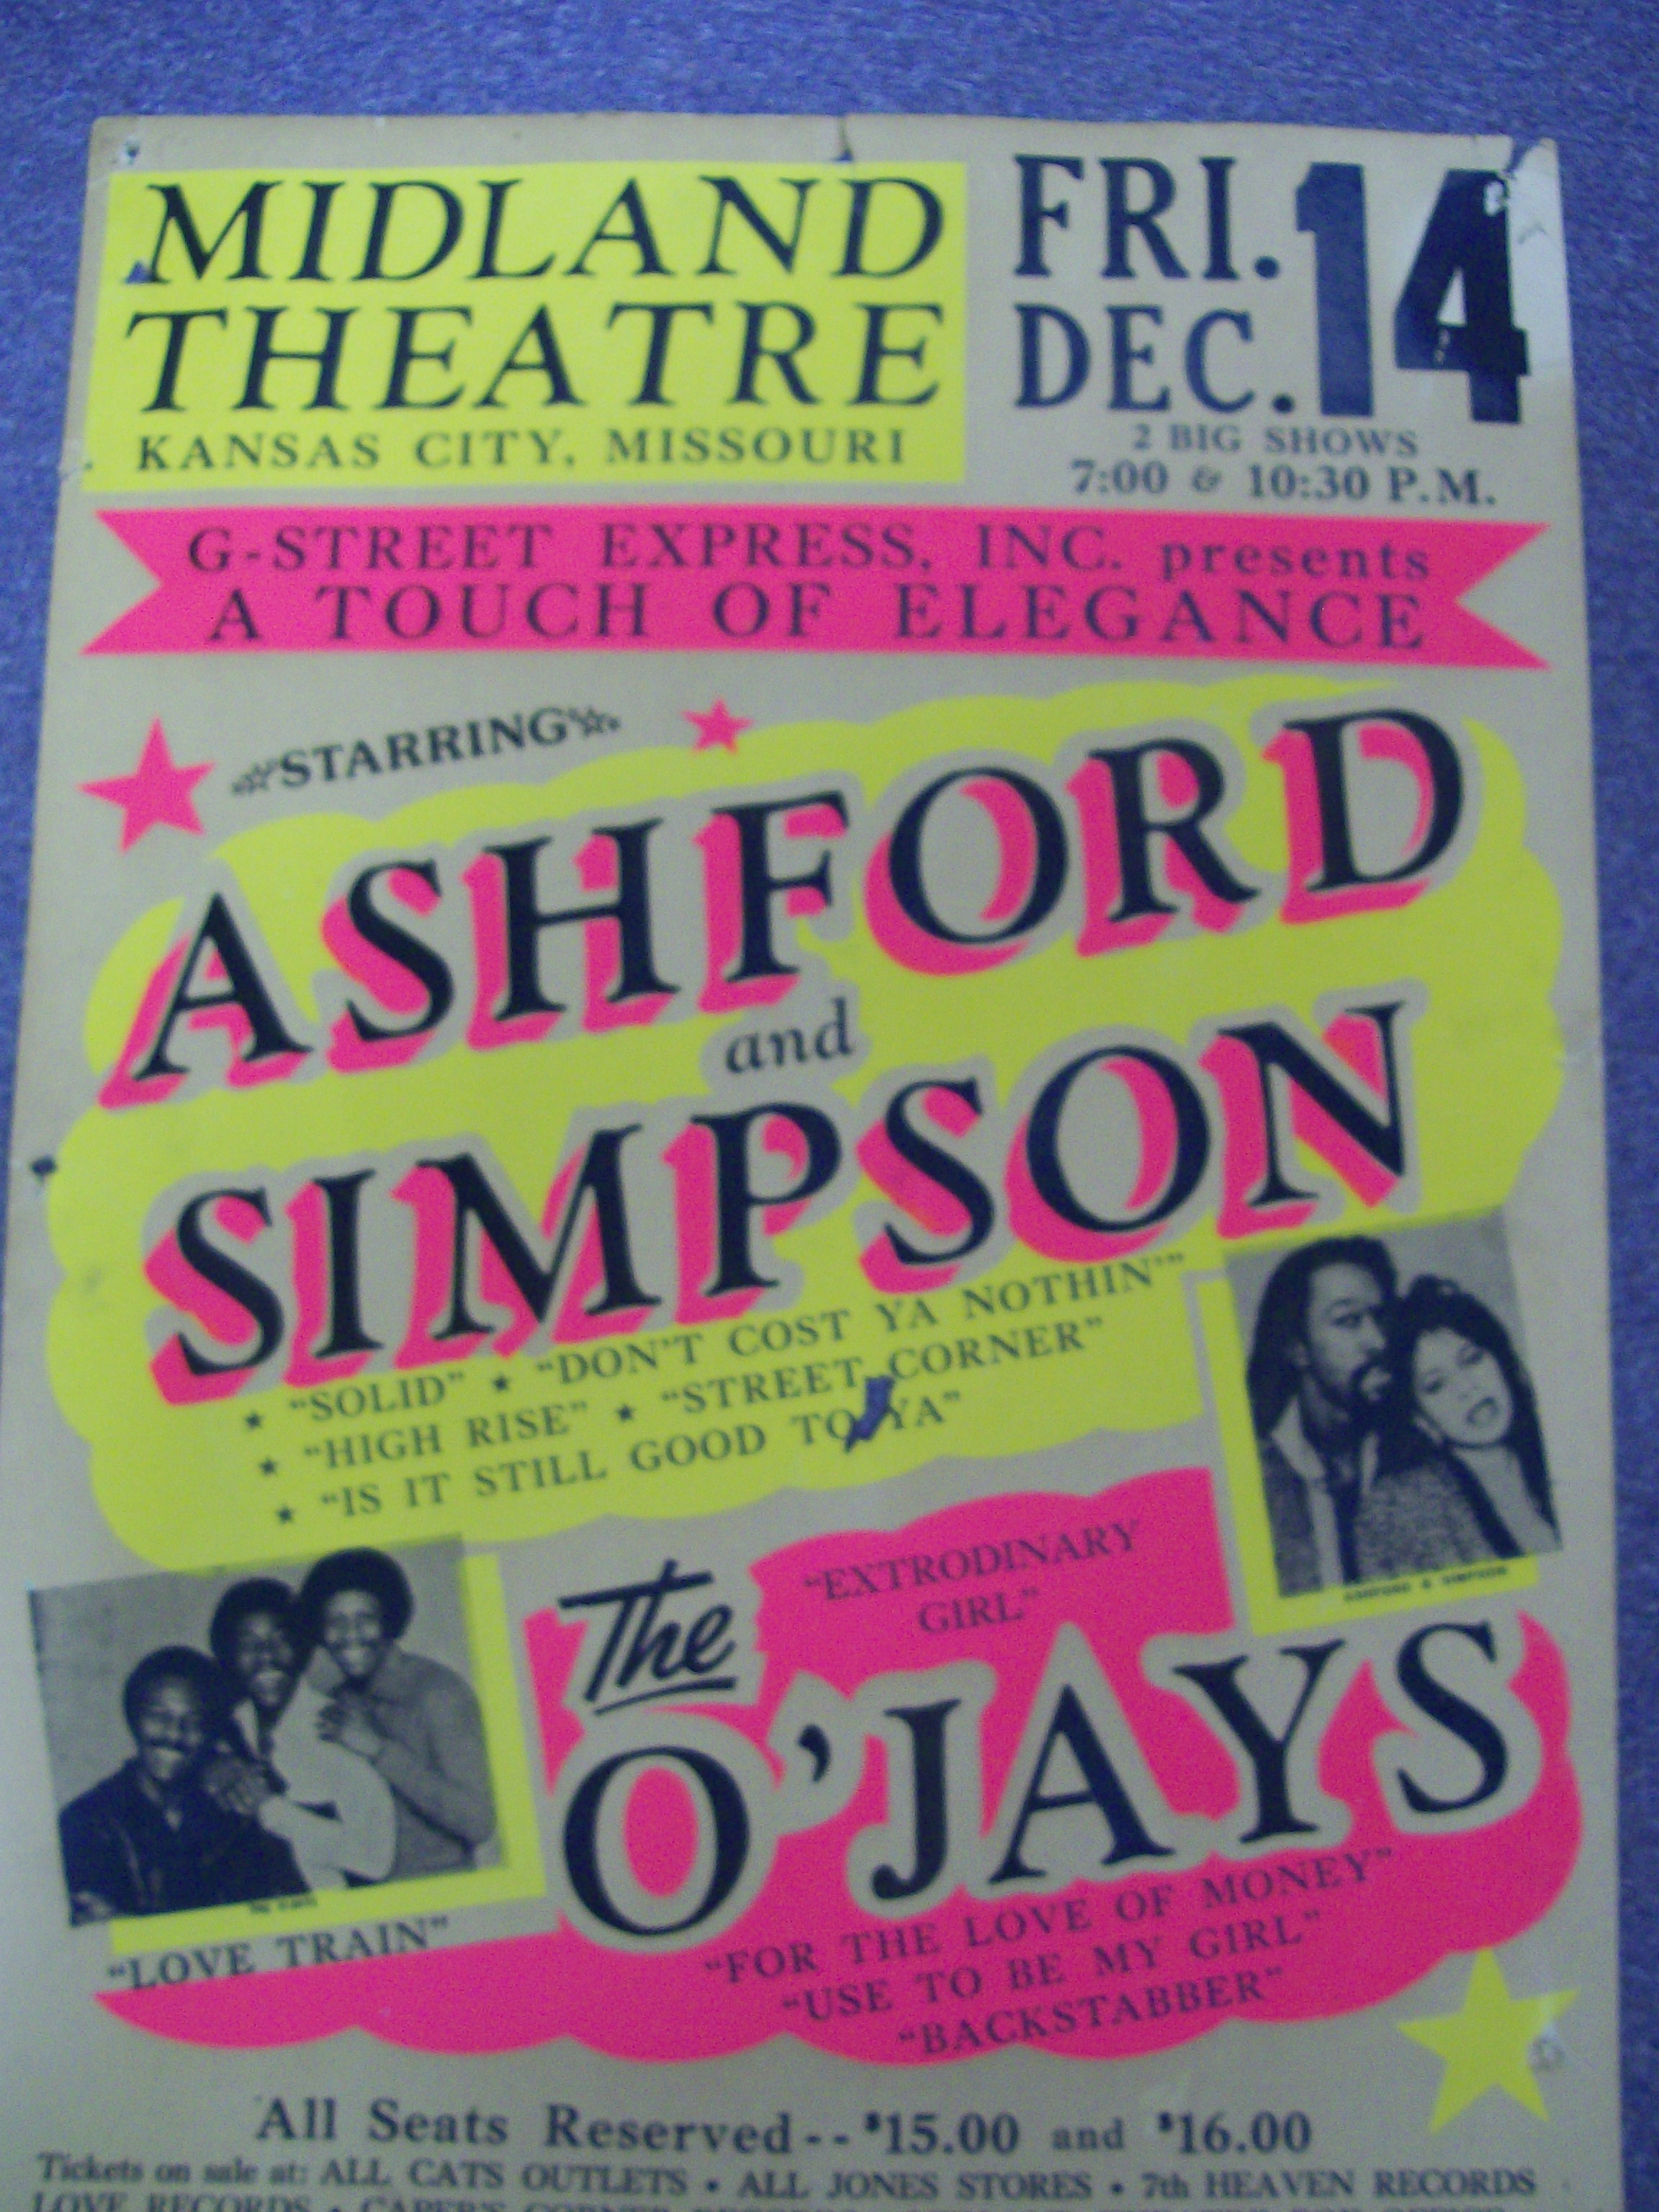 Very Rare appearance poster featuring Ashford and Simpson & O'Ja